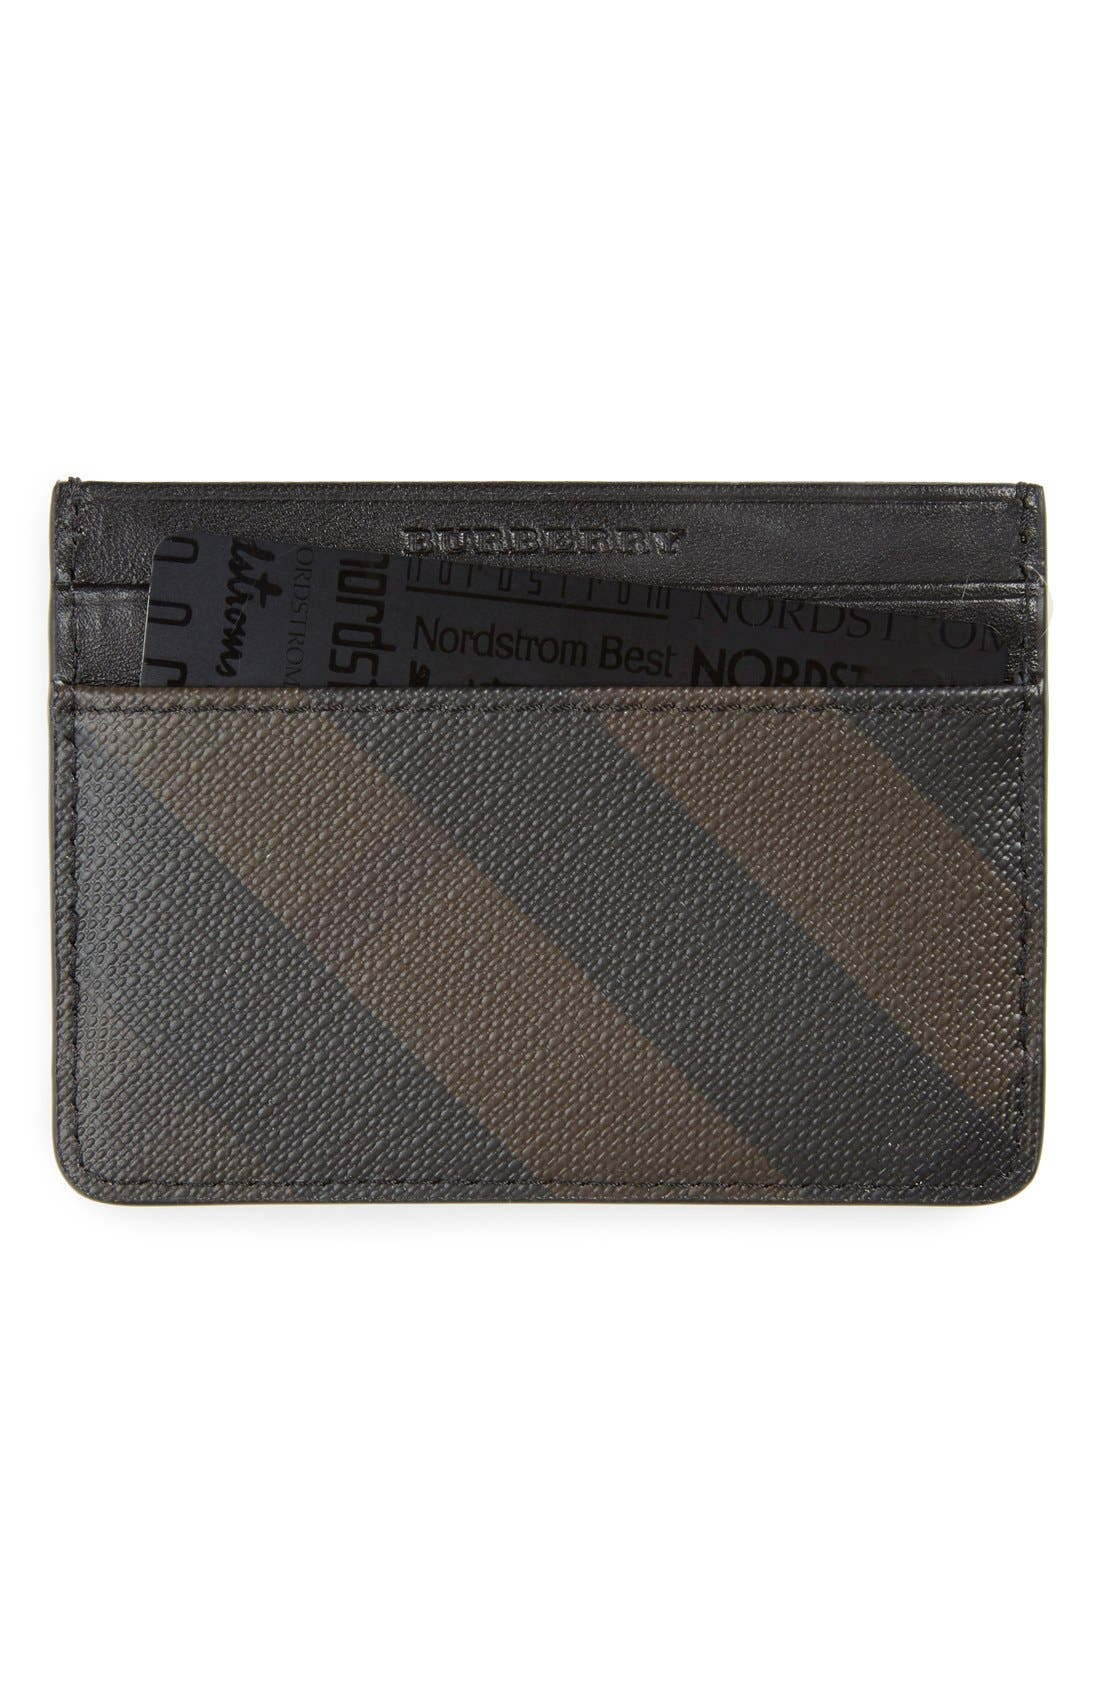 BURBERRY,                             'New London' Check Card Case,                             Main thumbnail 1, color,                             207